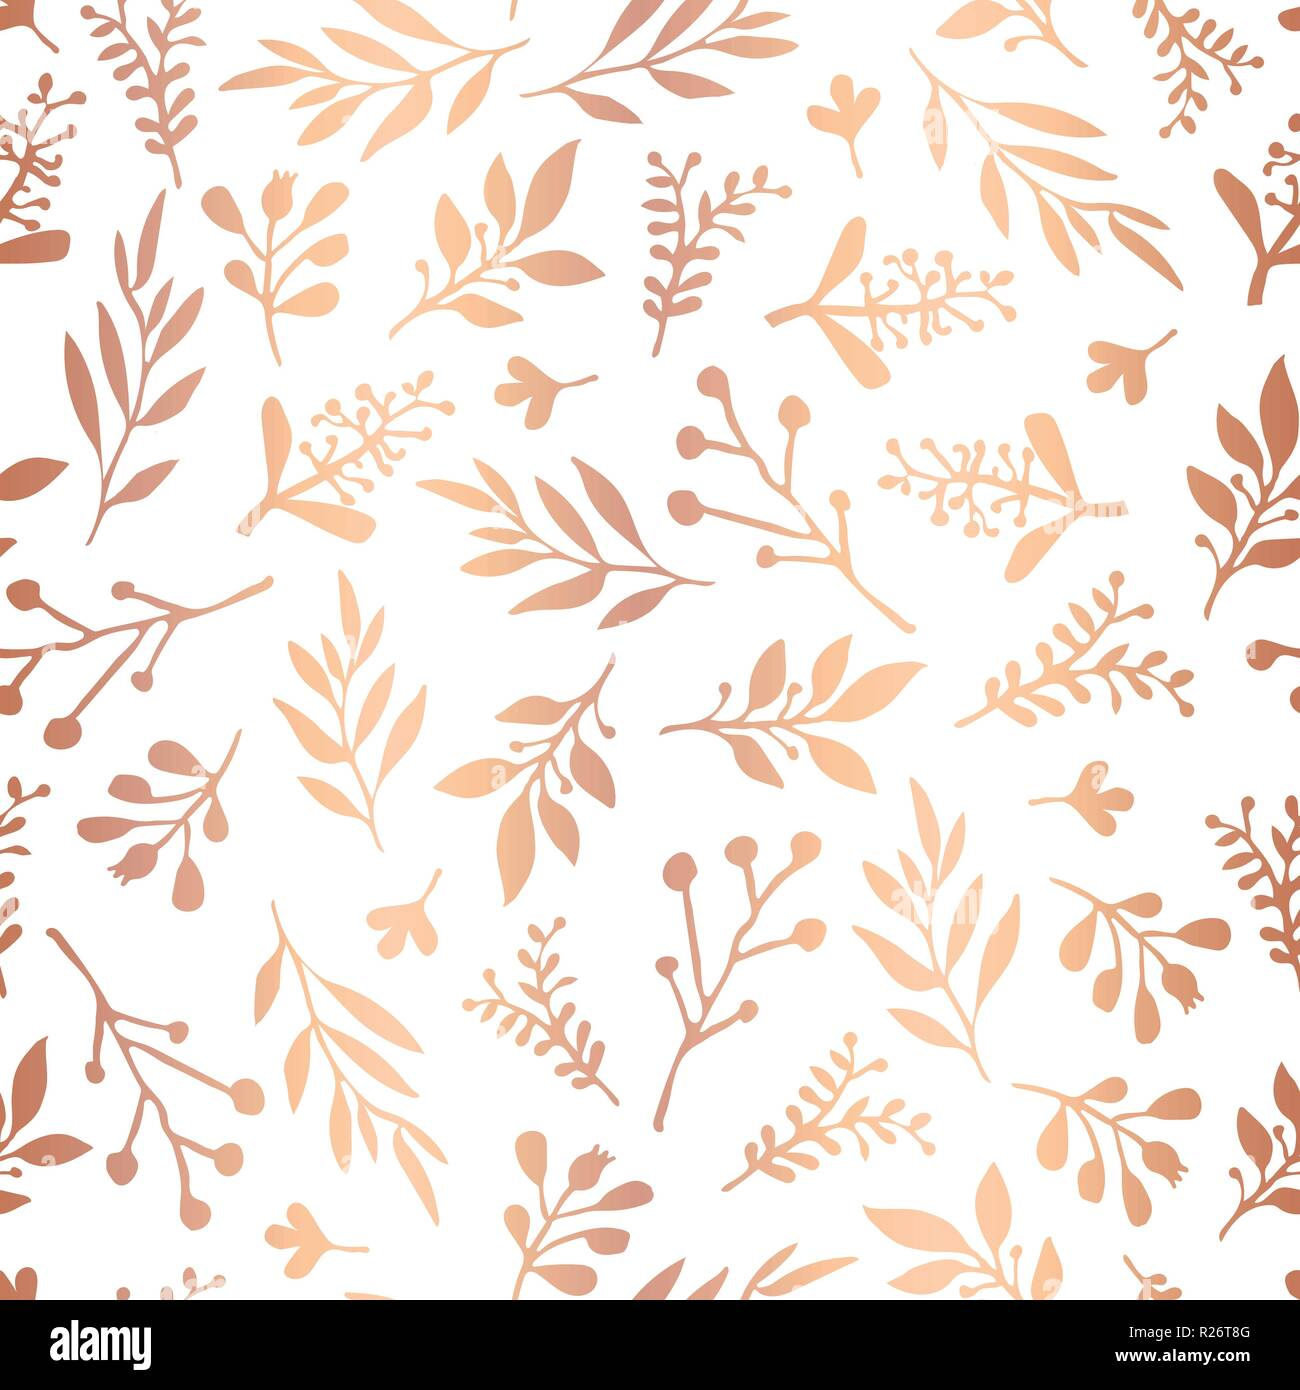 copper rose gold foil florals seamless vector background golden abstract wildflower grass shapes on white background elegant pattern for holidays paper packaging wedding party invite christmas R26T8G